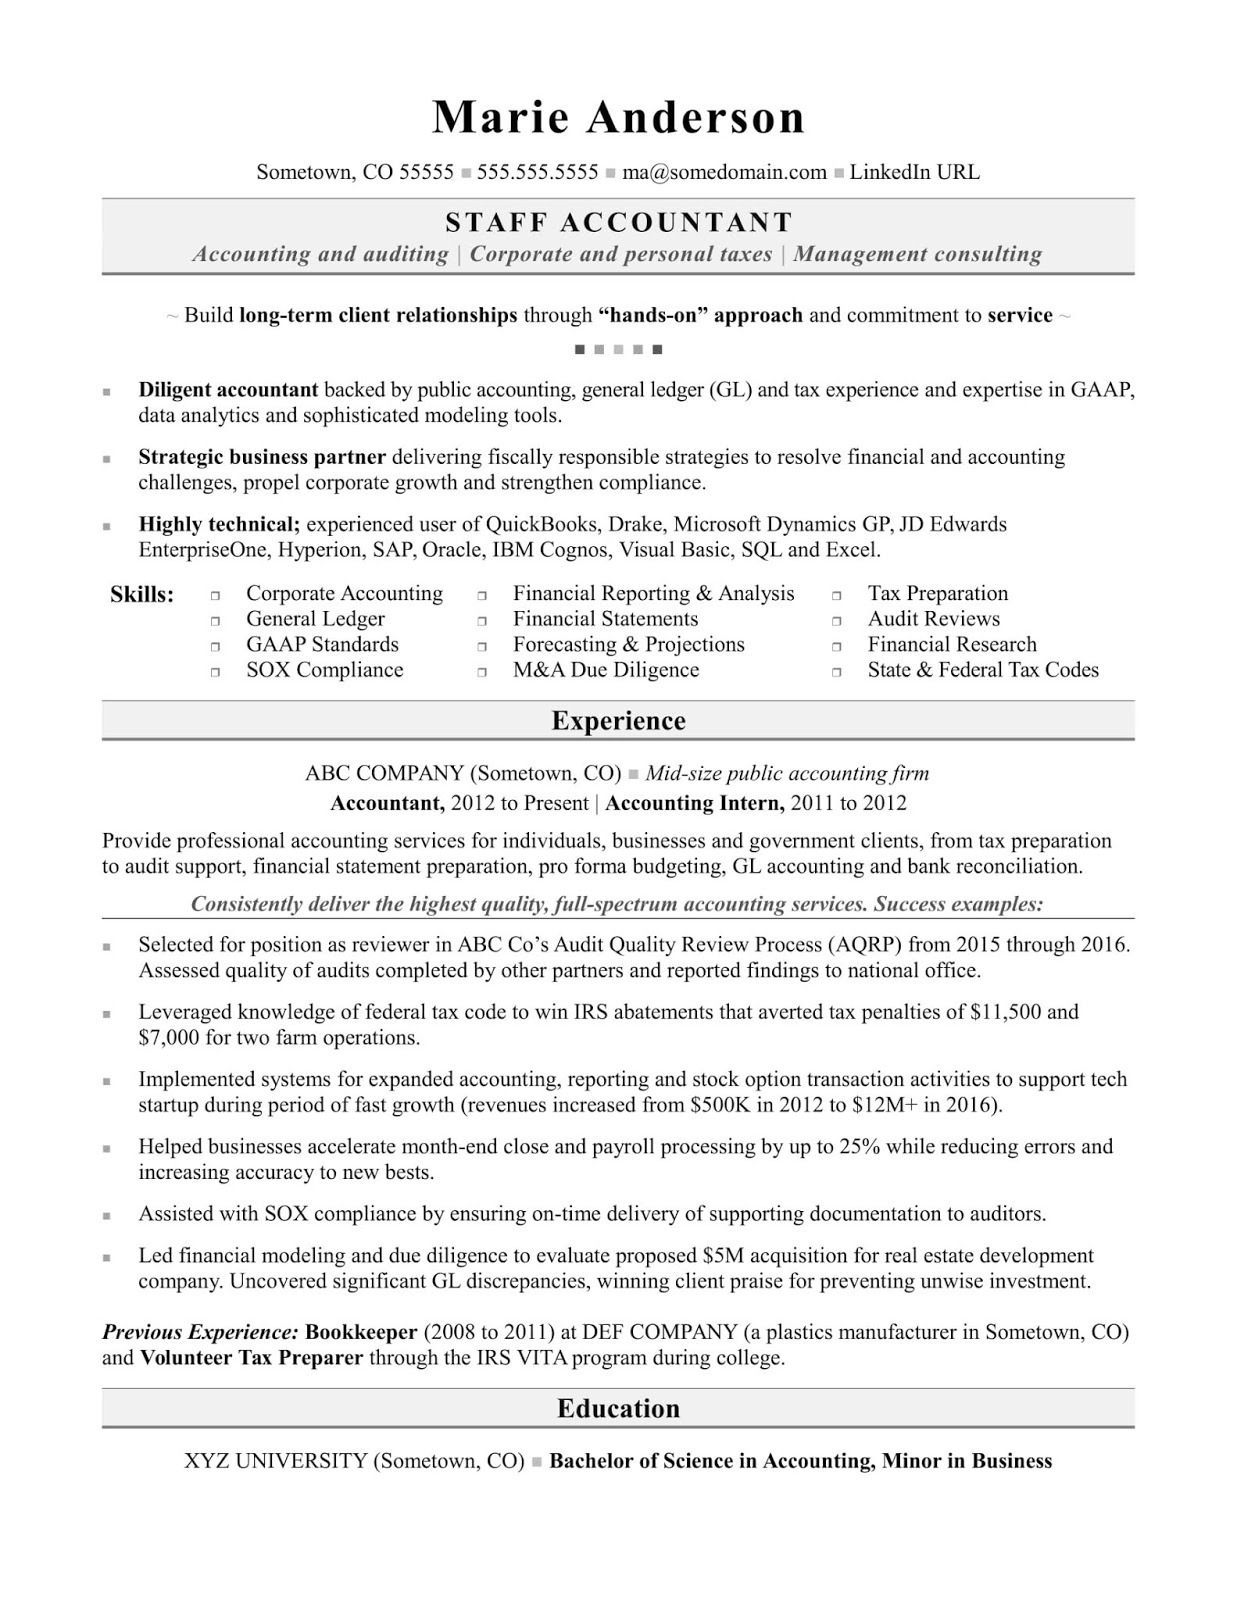 accounting job resume, accounting job resume objective, accounting job resume templates 2019,accounting job resume description, accounting job resume examples accounting job resume pdf 2020, accounting job resume format accounting job resume skills accountant resume job description accounting clerk job resume description accounting resume career objective